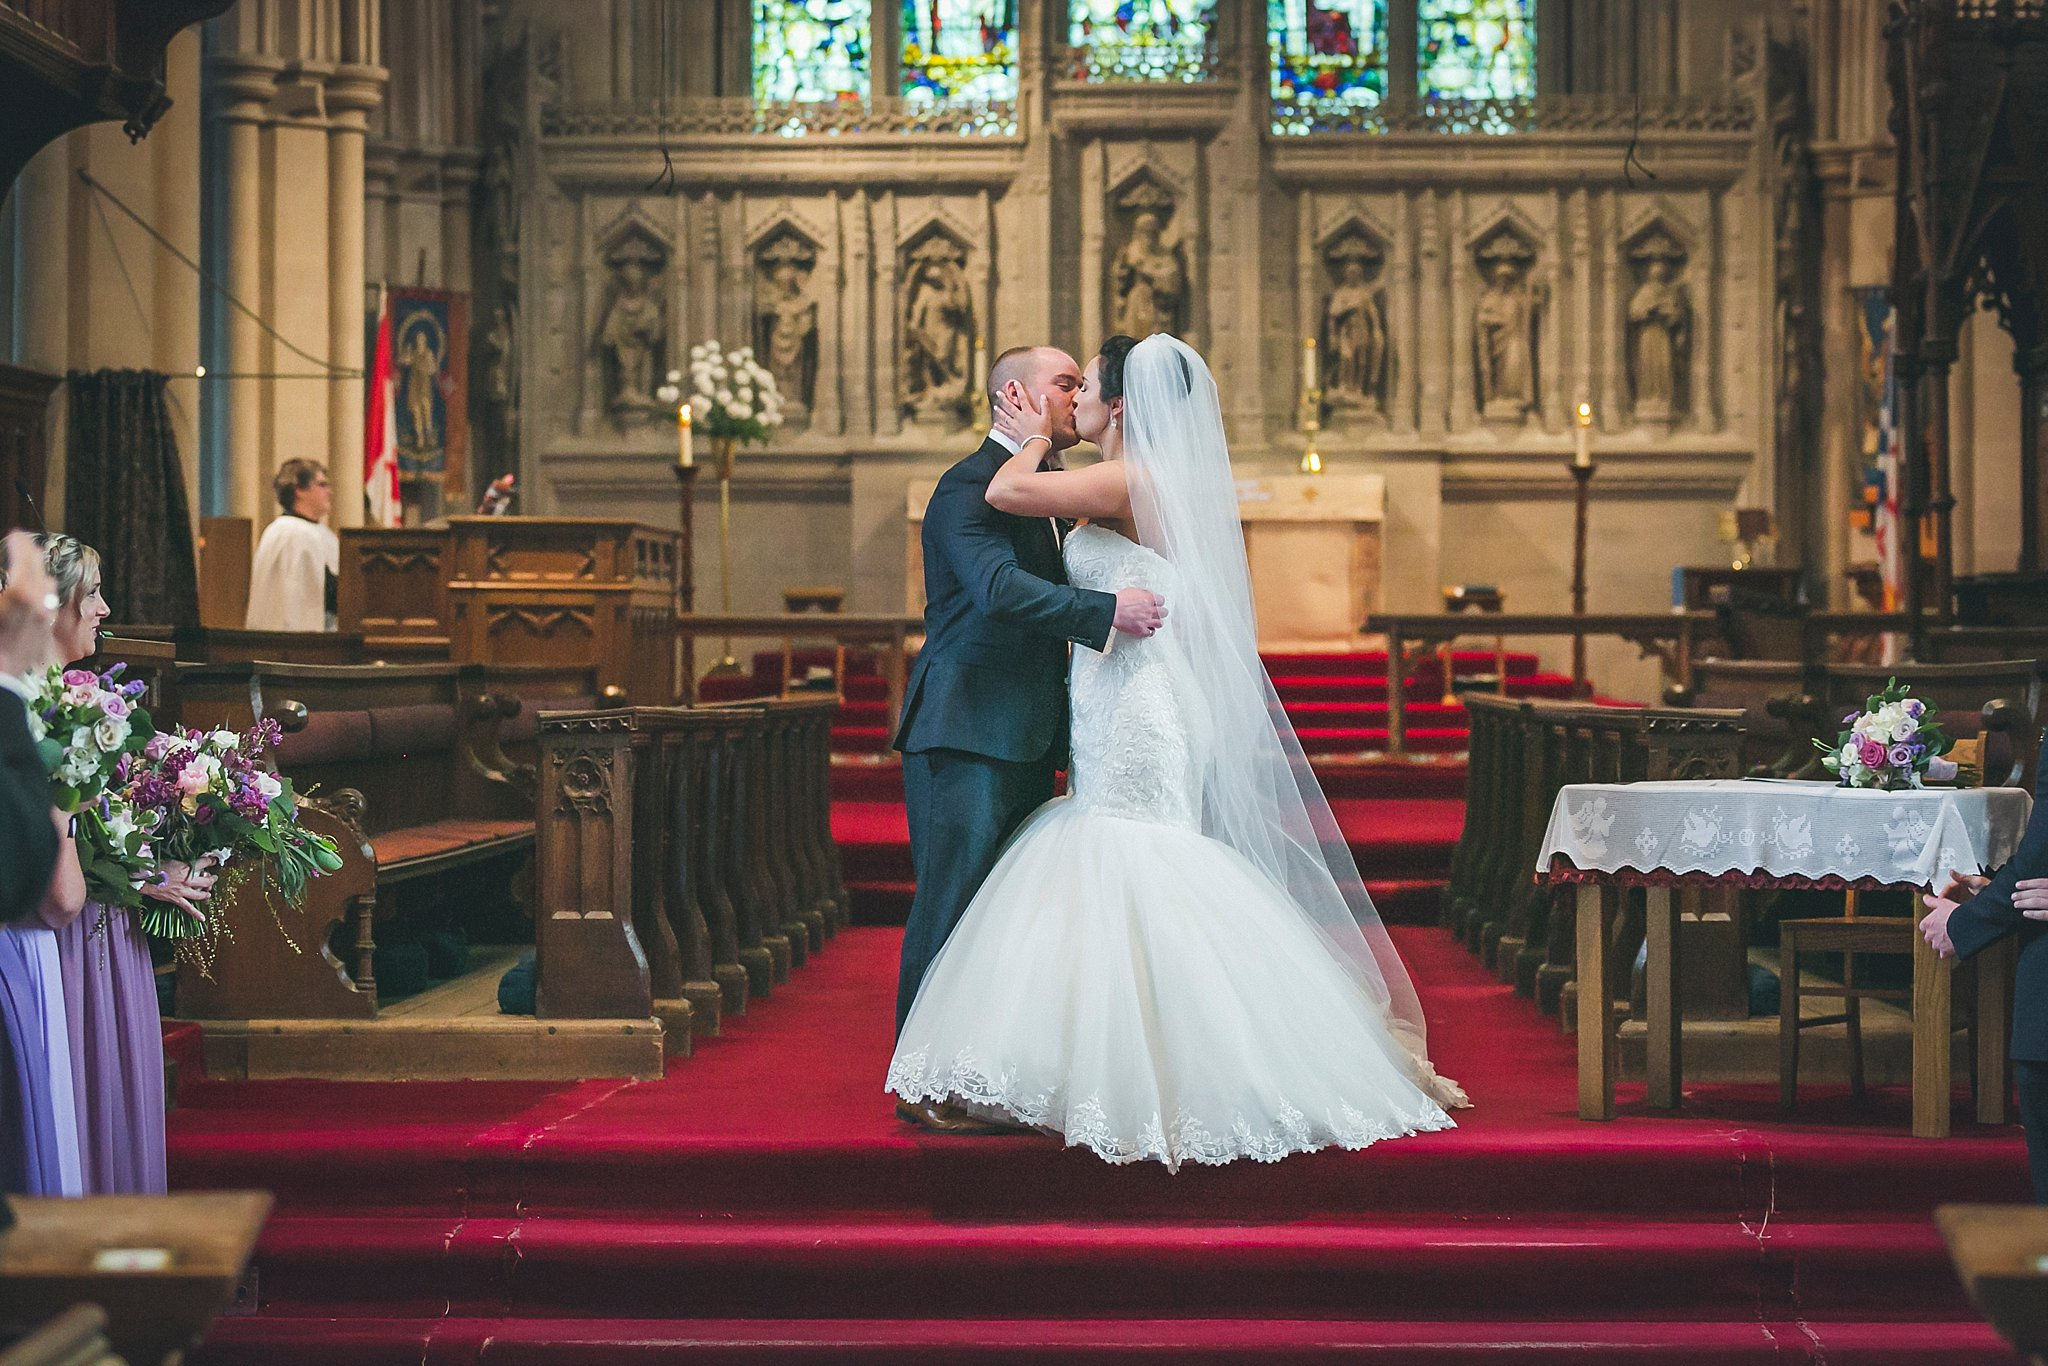 Bride and Groom's first kiss at the alter in the Anglican Cathedral during a St. John's, Newfoundland wedding.